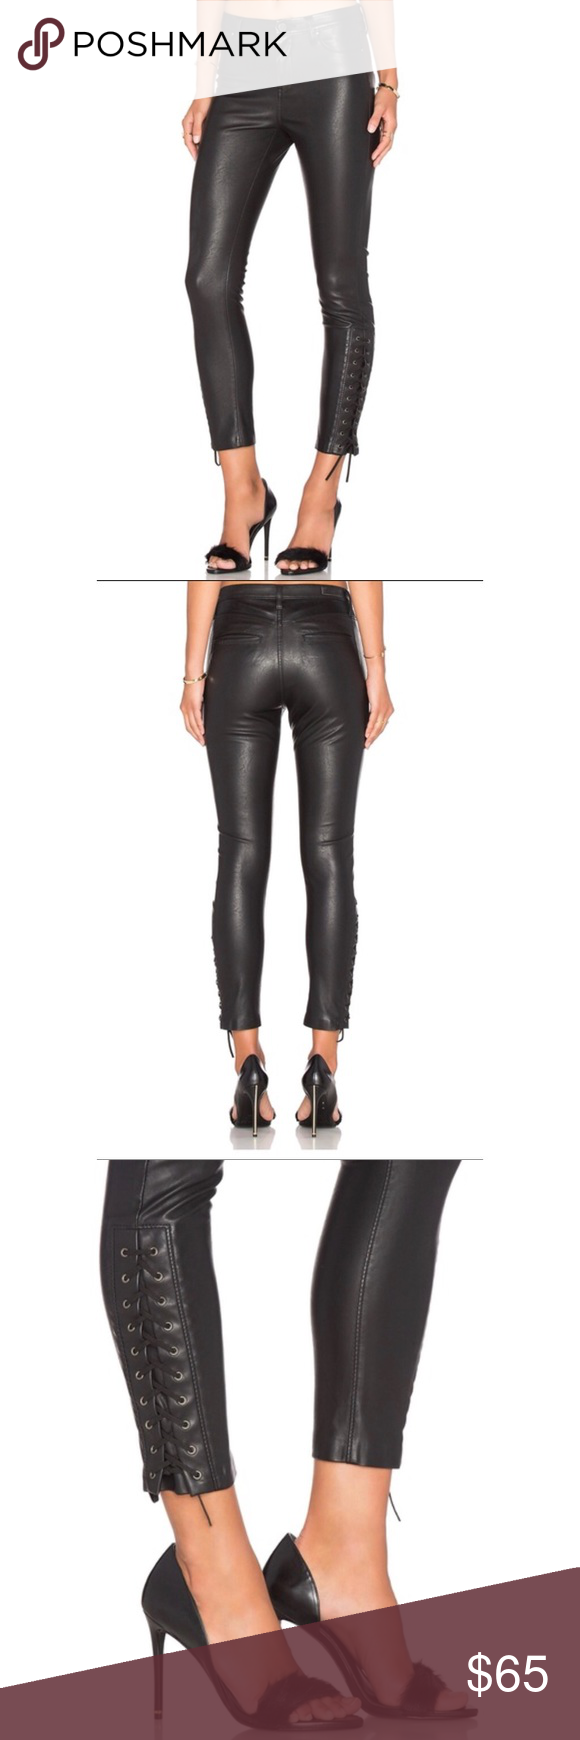 Blank Nyc Lace Up Vegan Leather Pants New Faux Leather Jeans Faux Leather Pants Blank Nyc